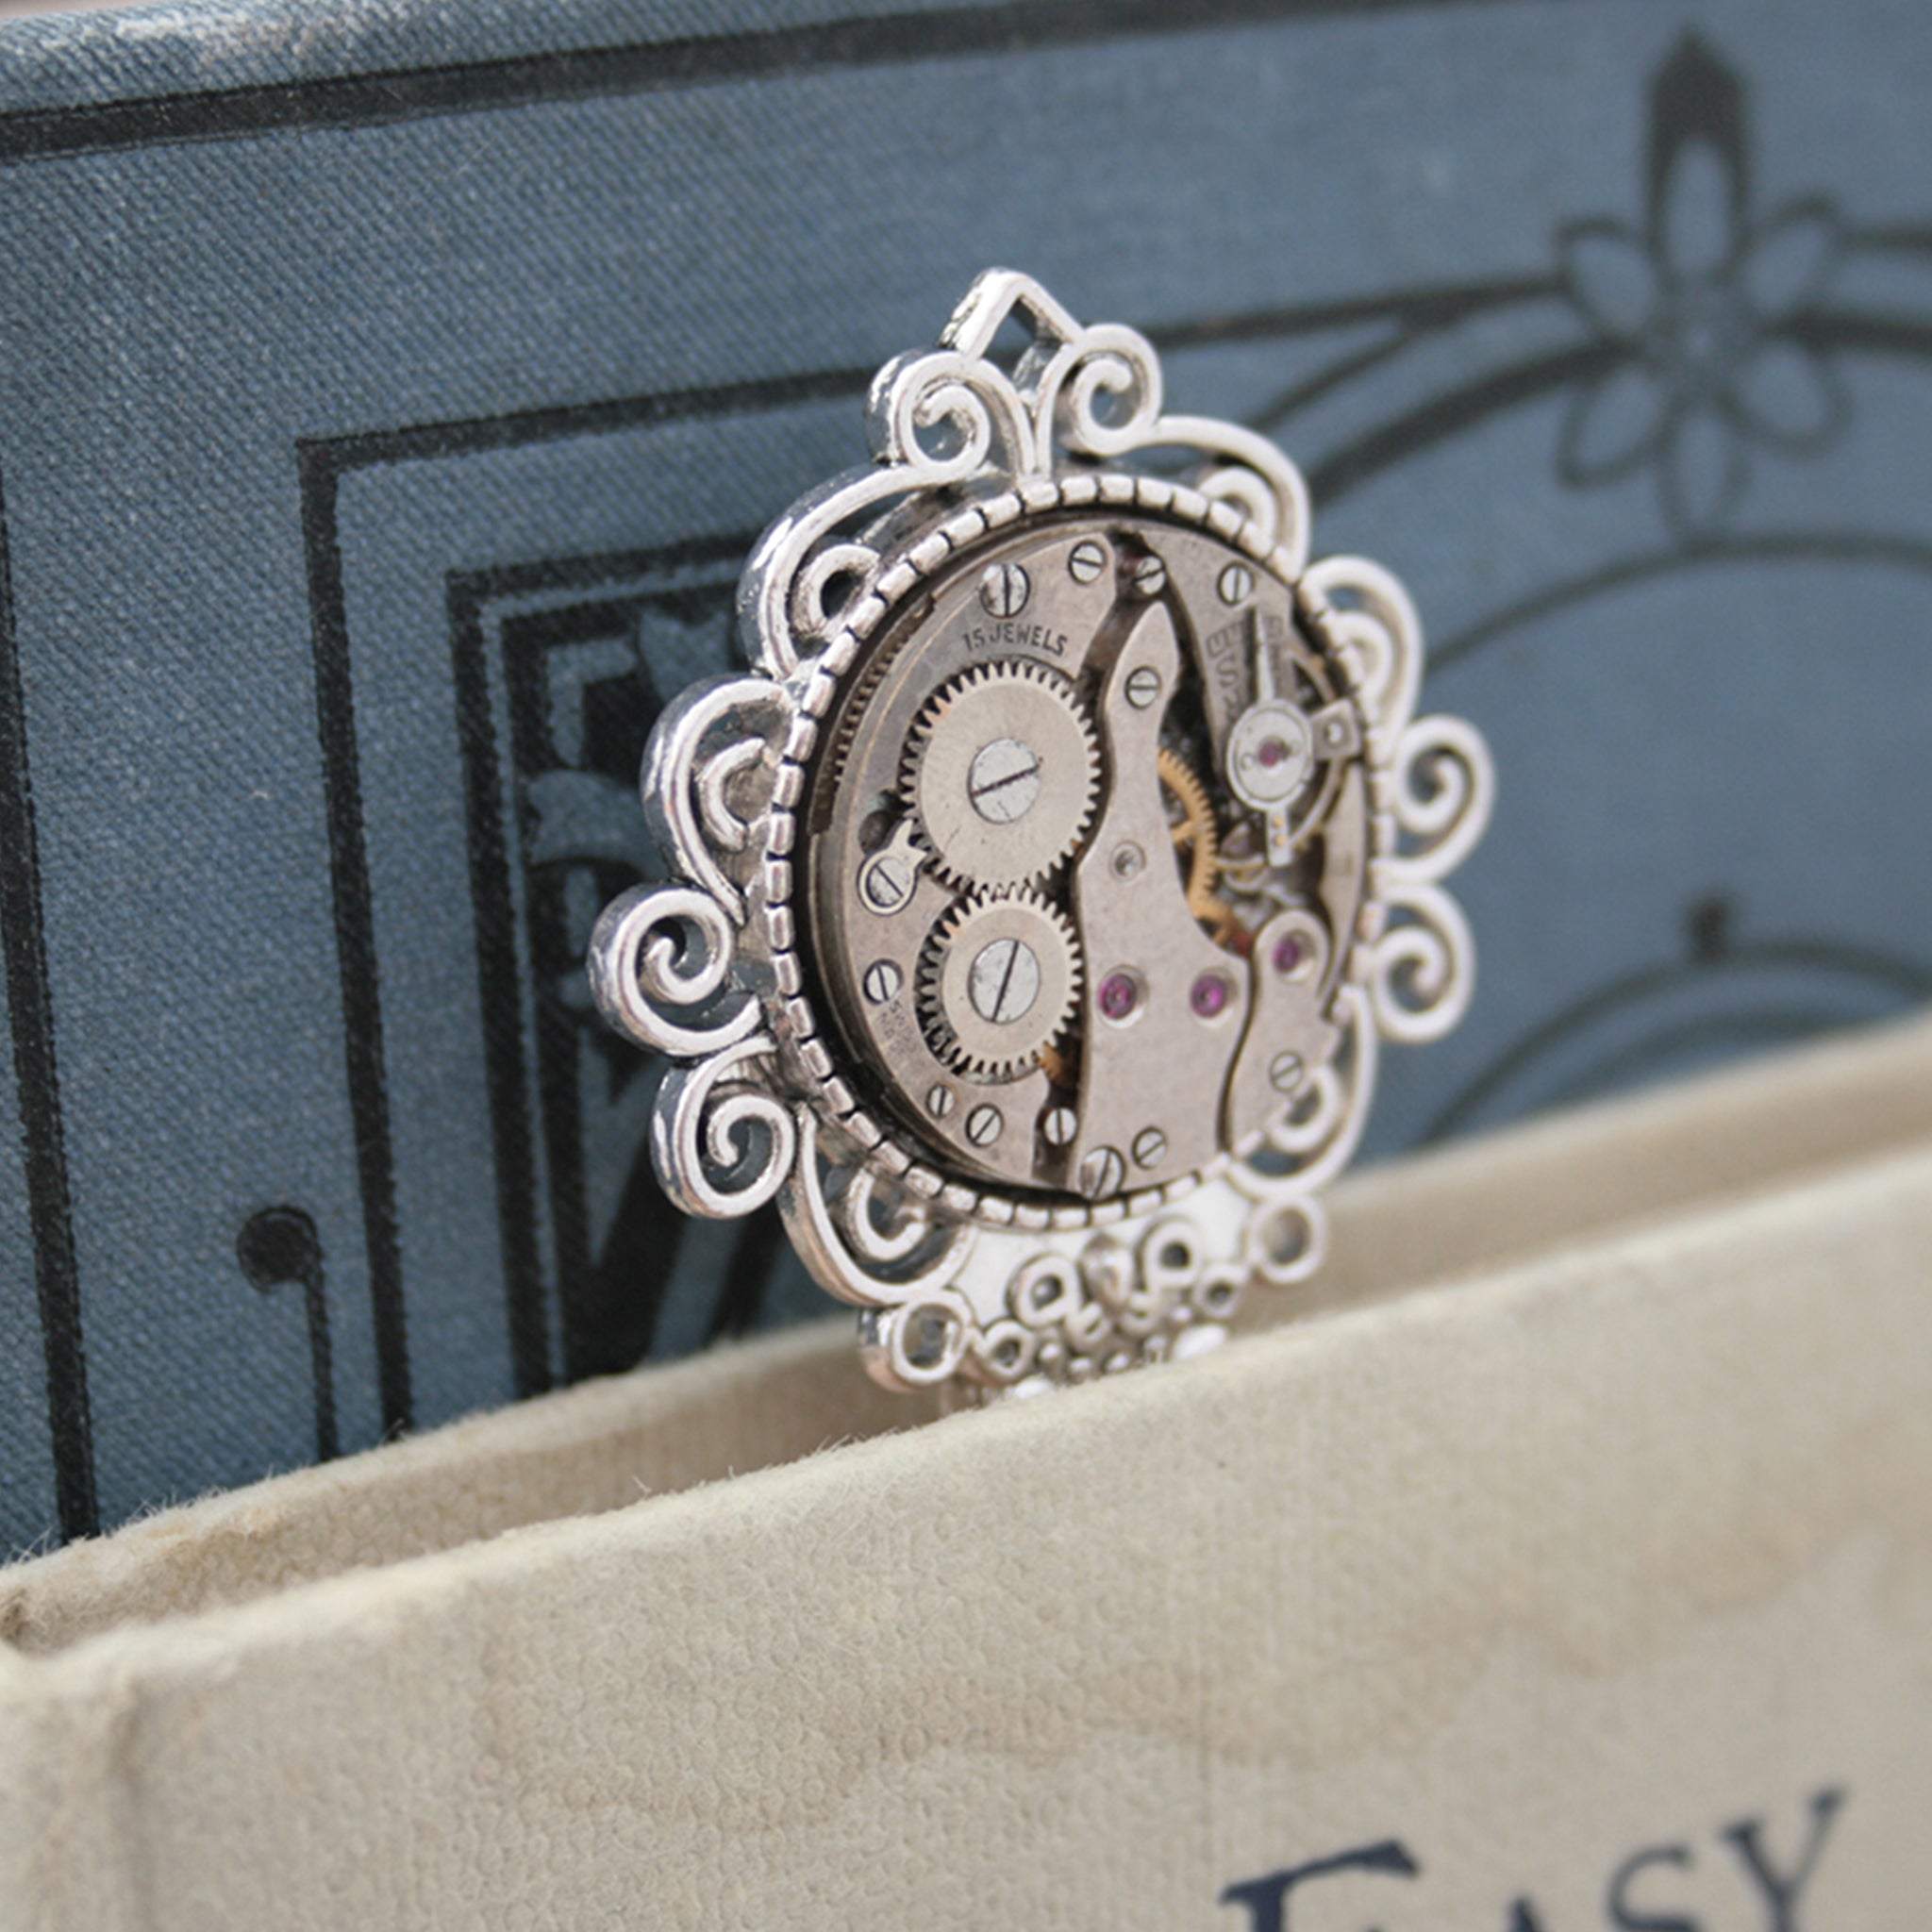 Steampunk Bookmarks for books made of real watch movement